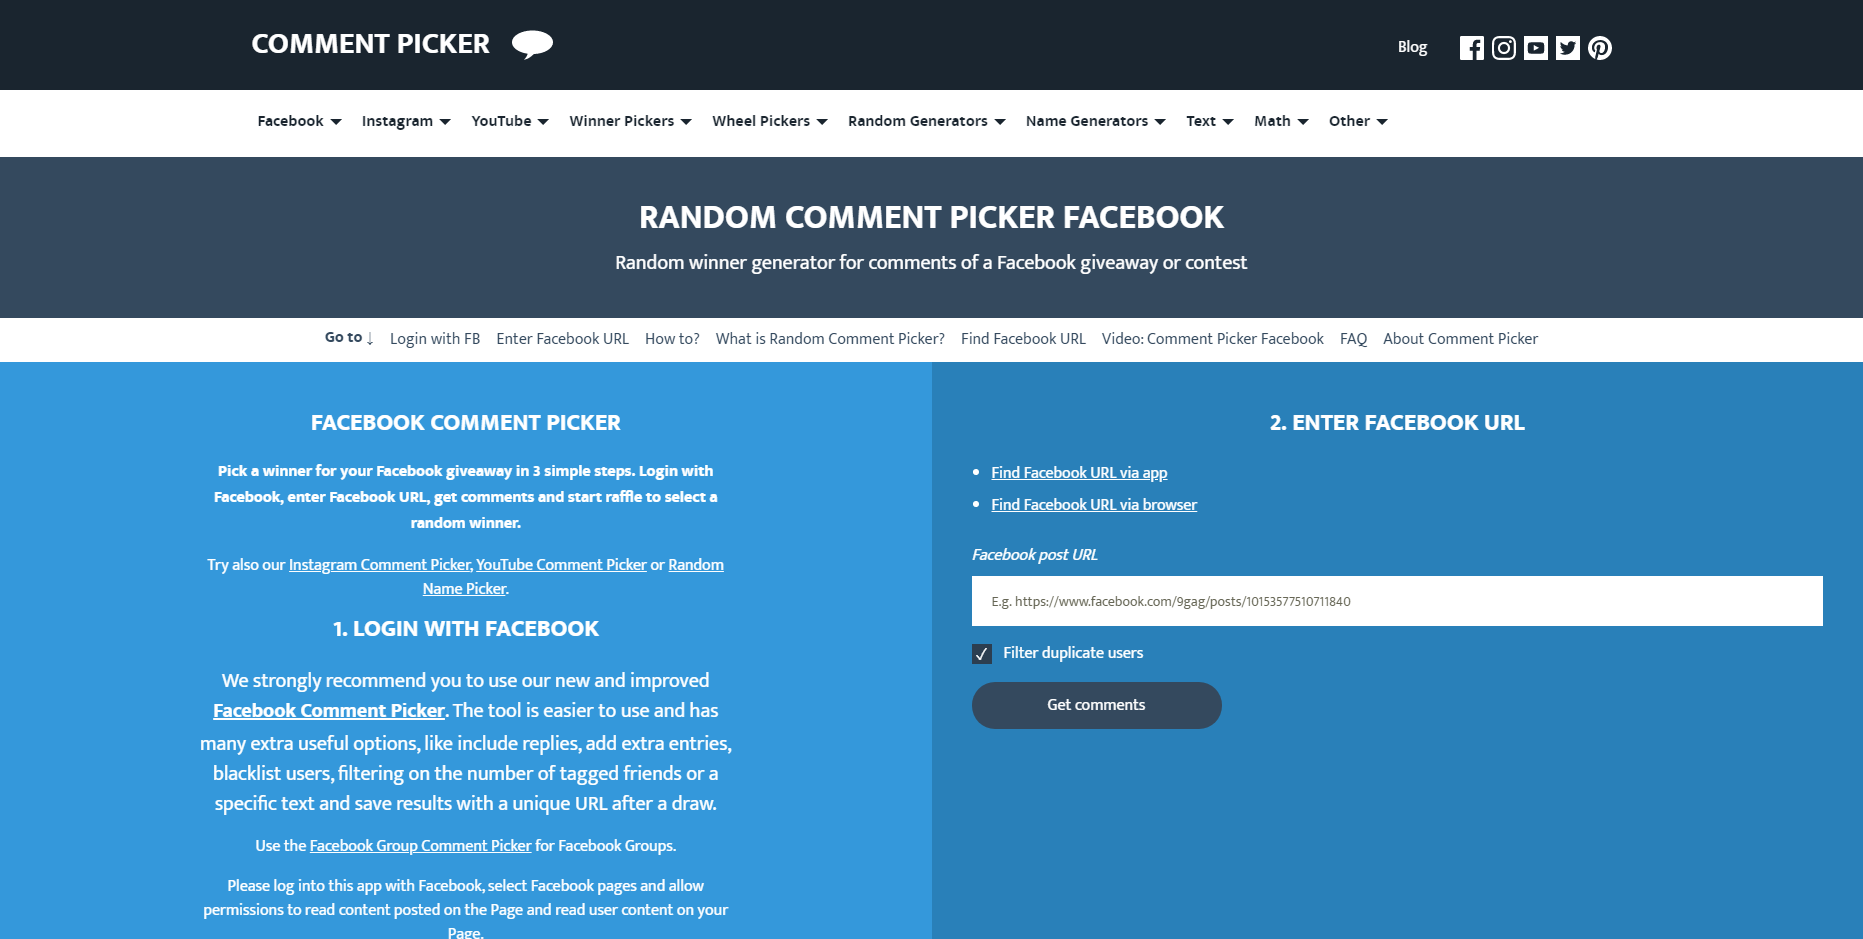 Comment picker